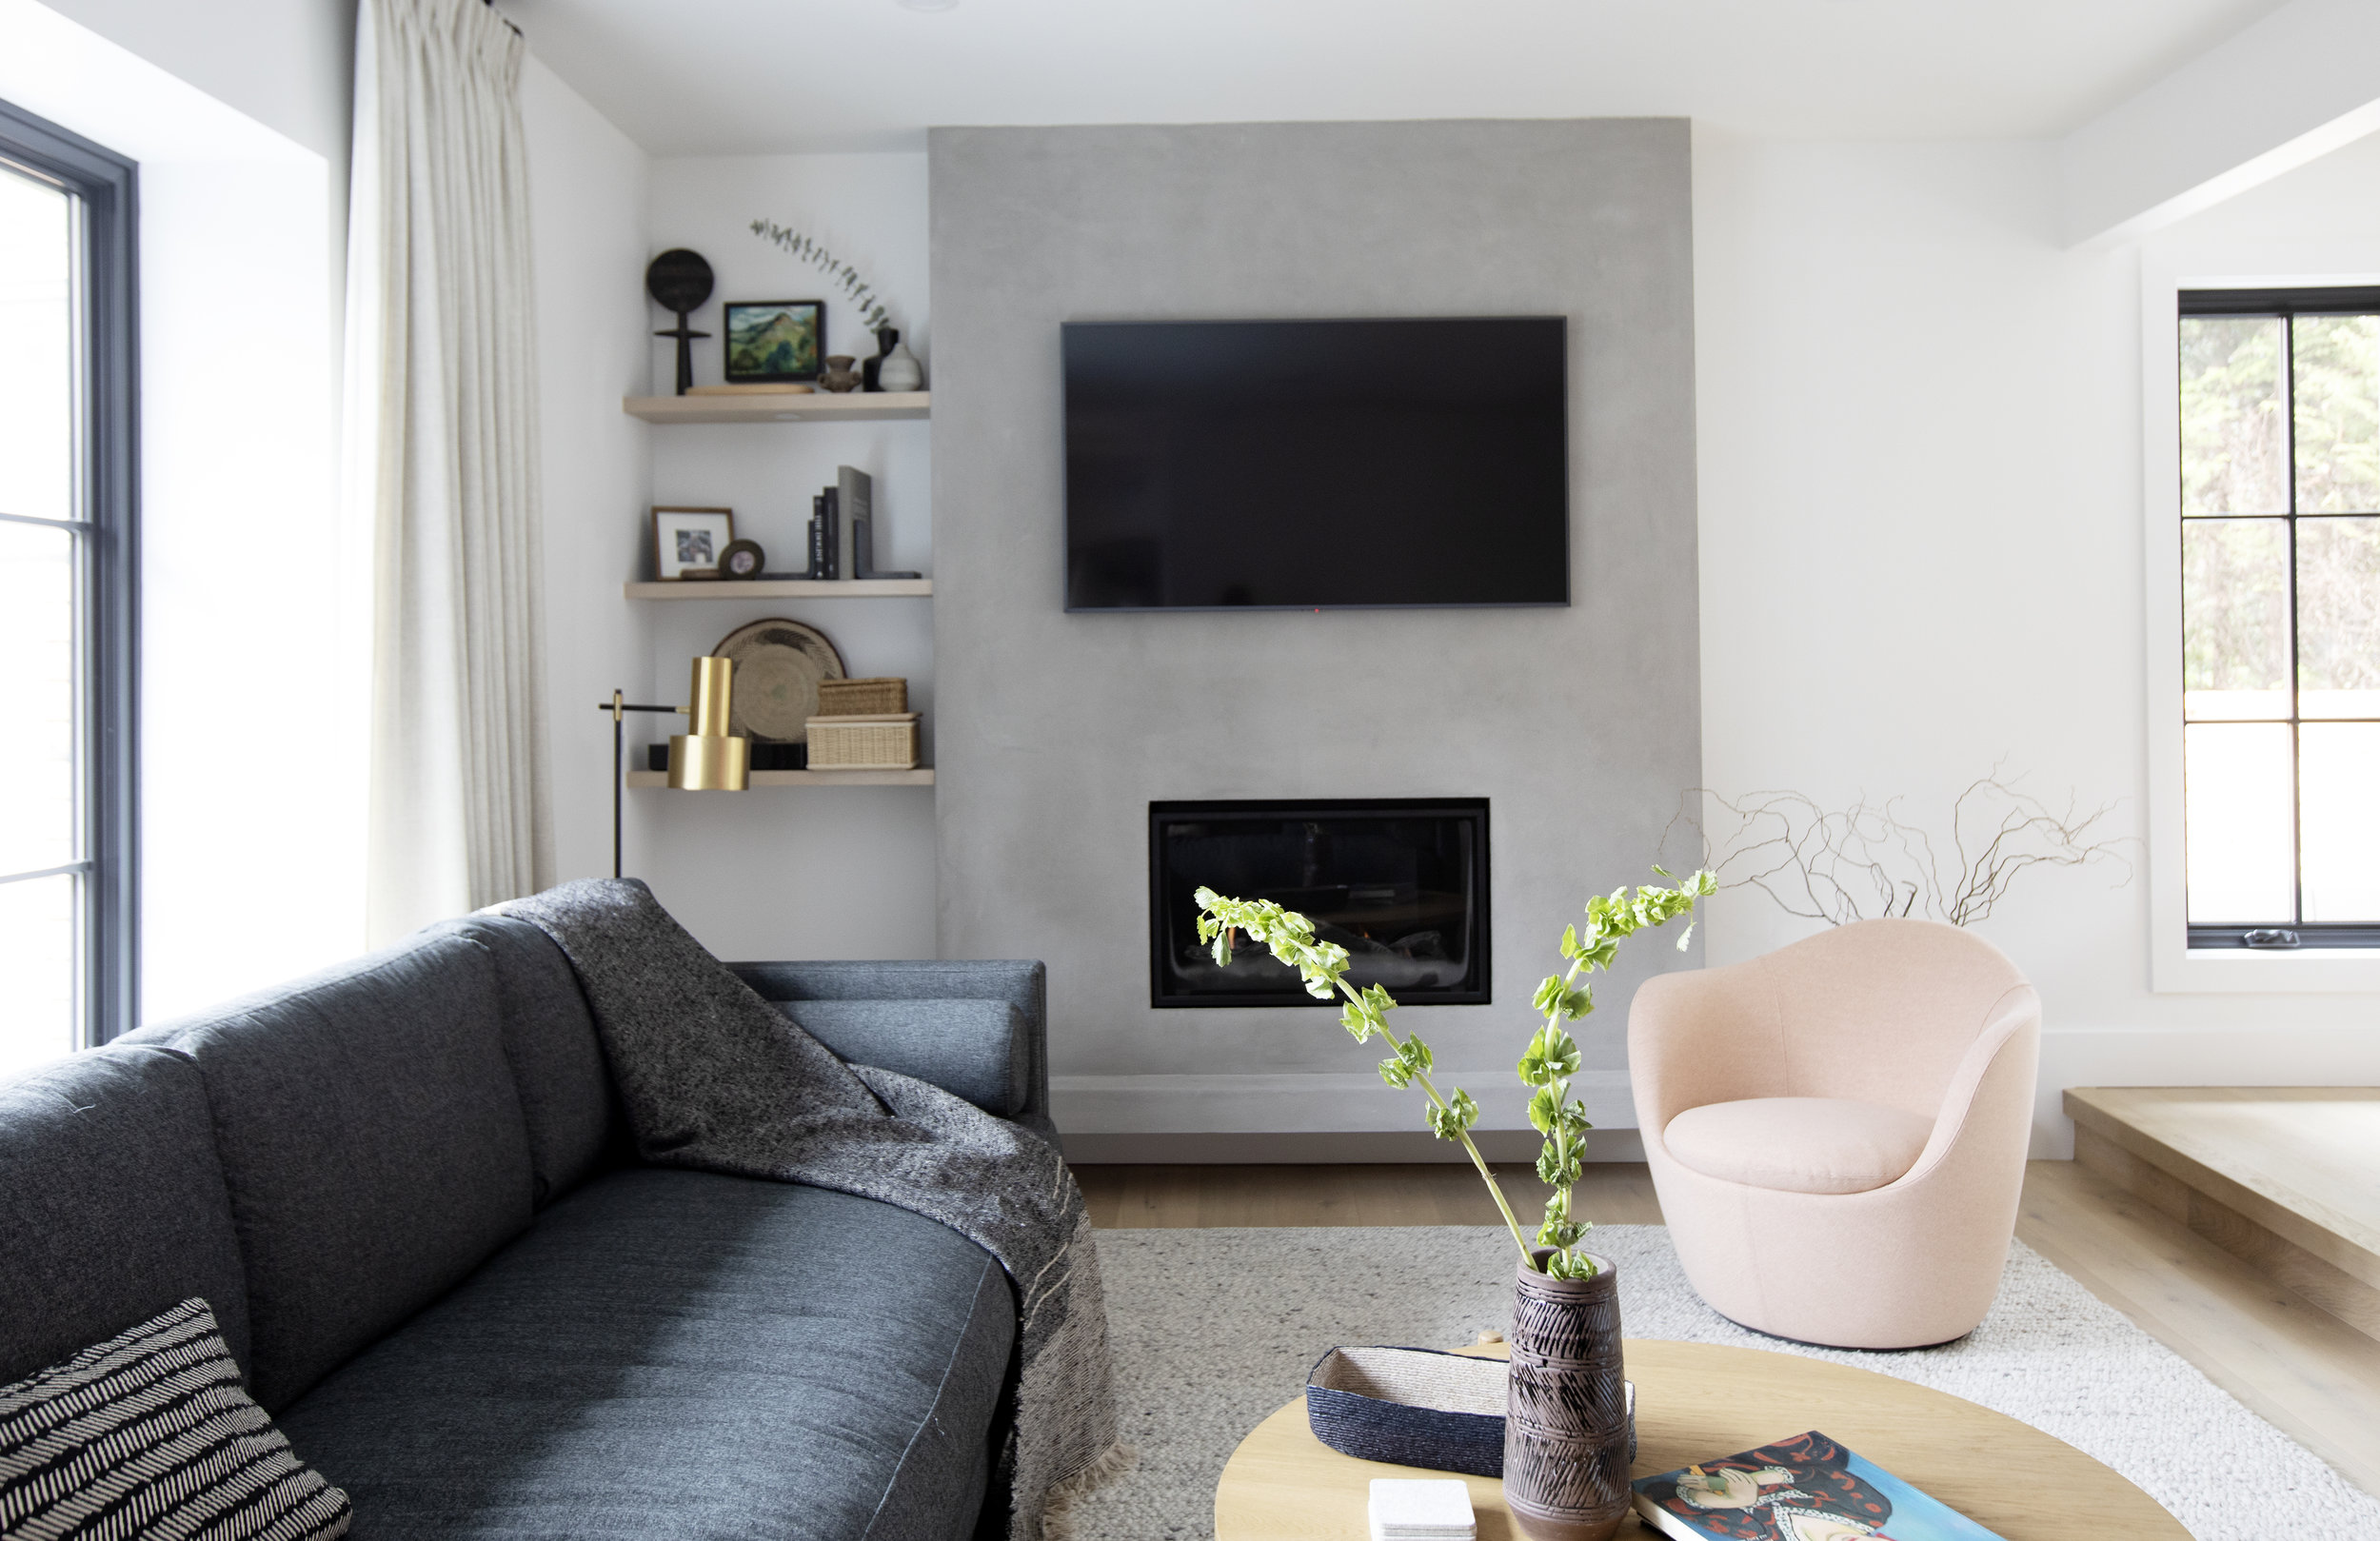 The TV sits above the inset fireplace at Alderfield place. A beautiful bookshelf with various knick knacks sits beside it.